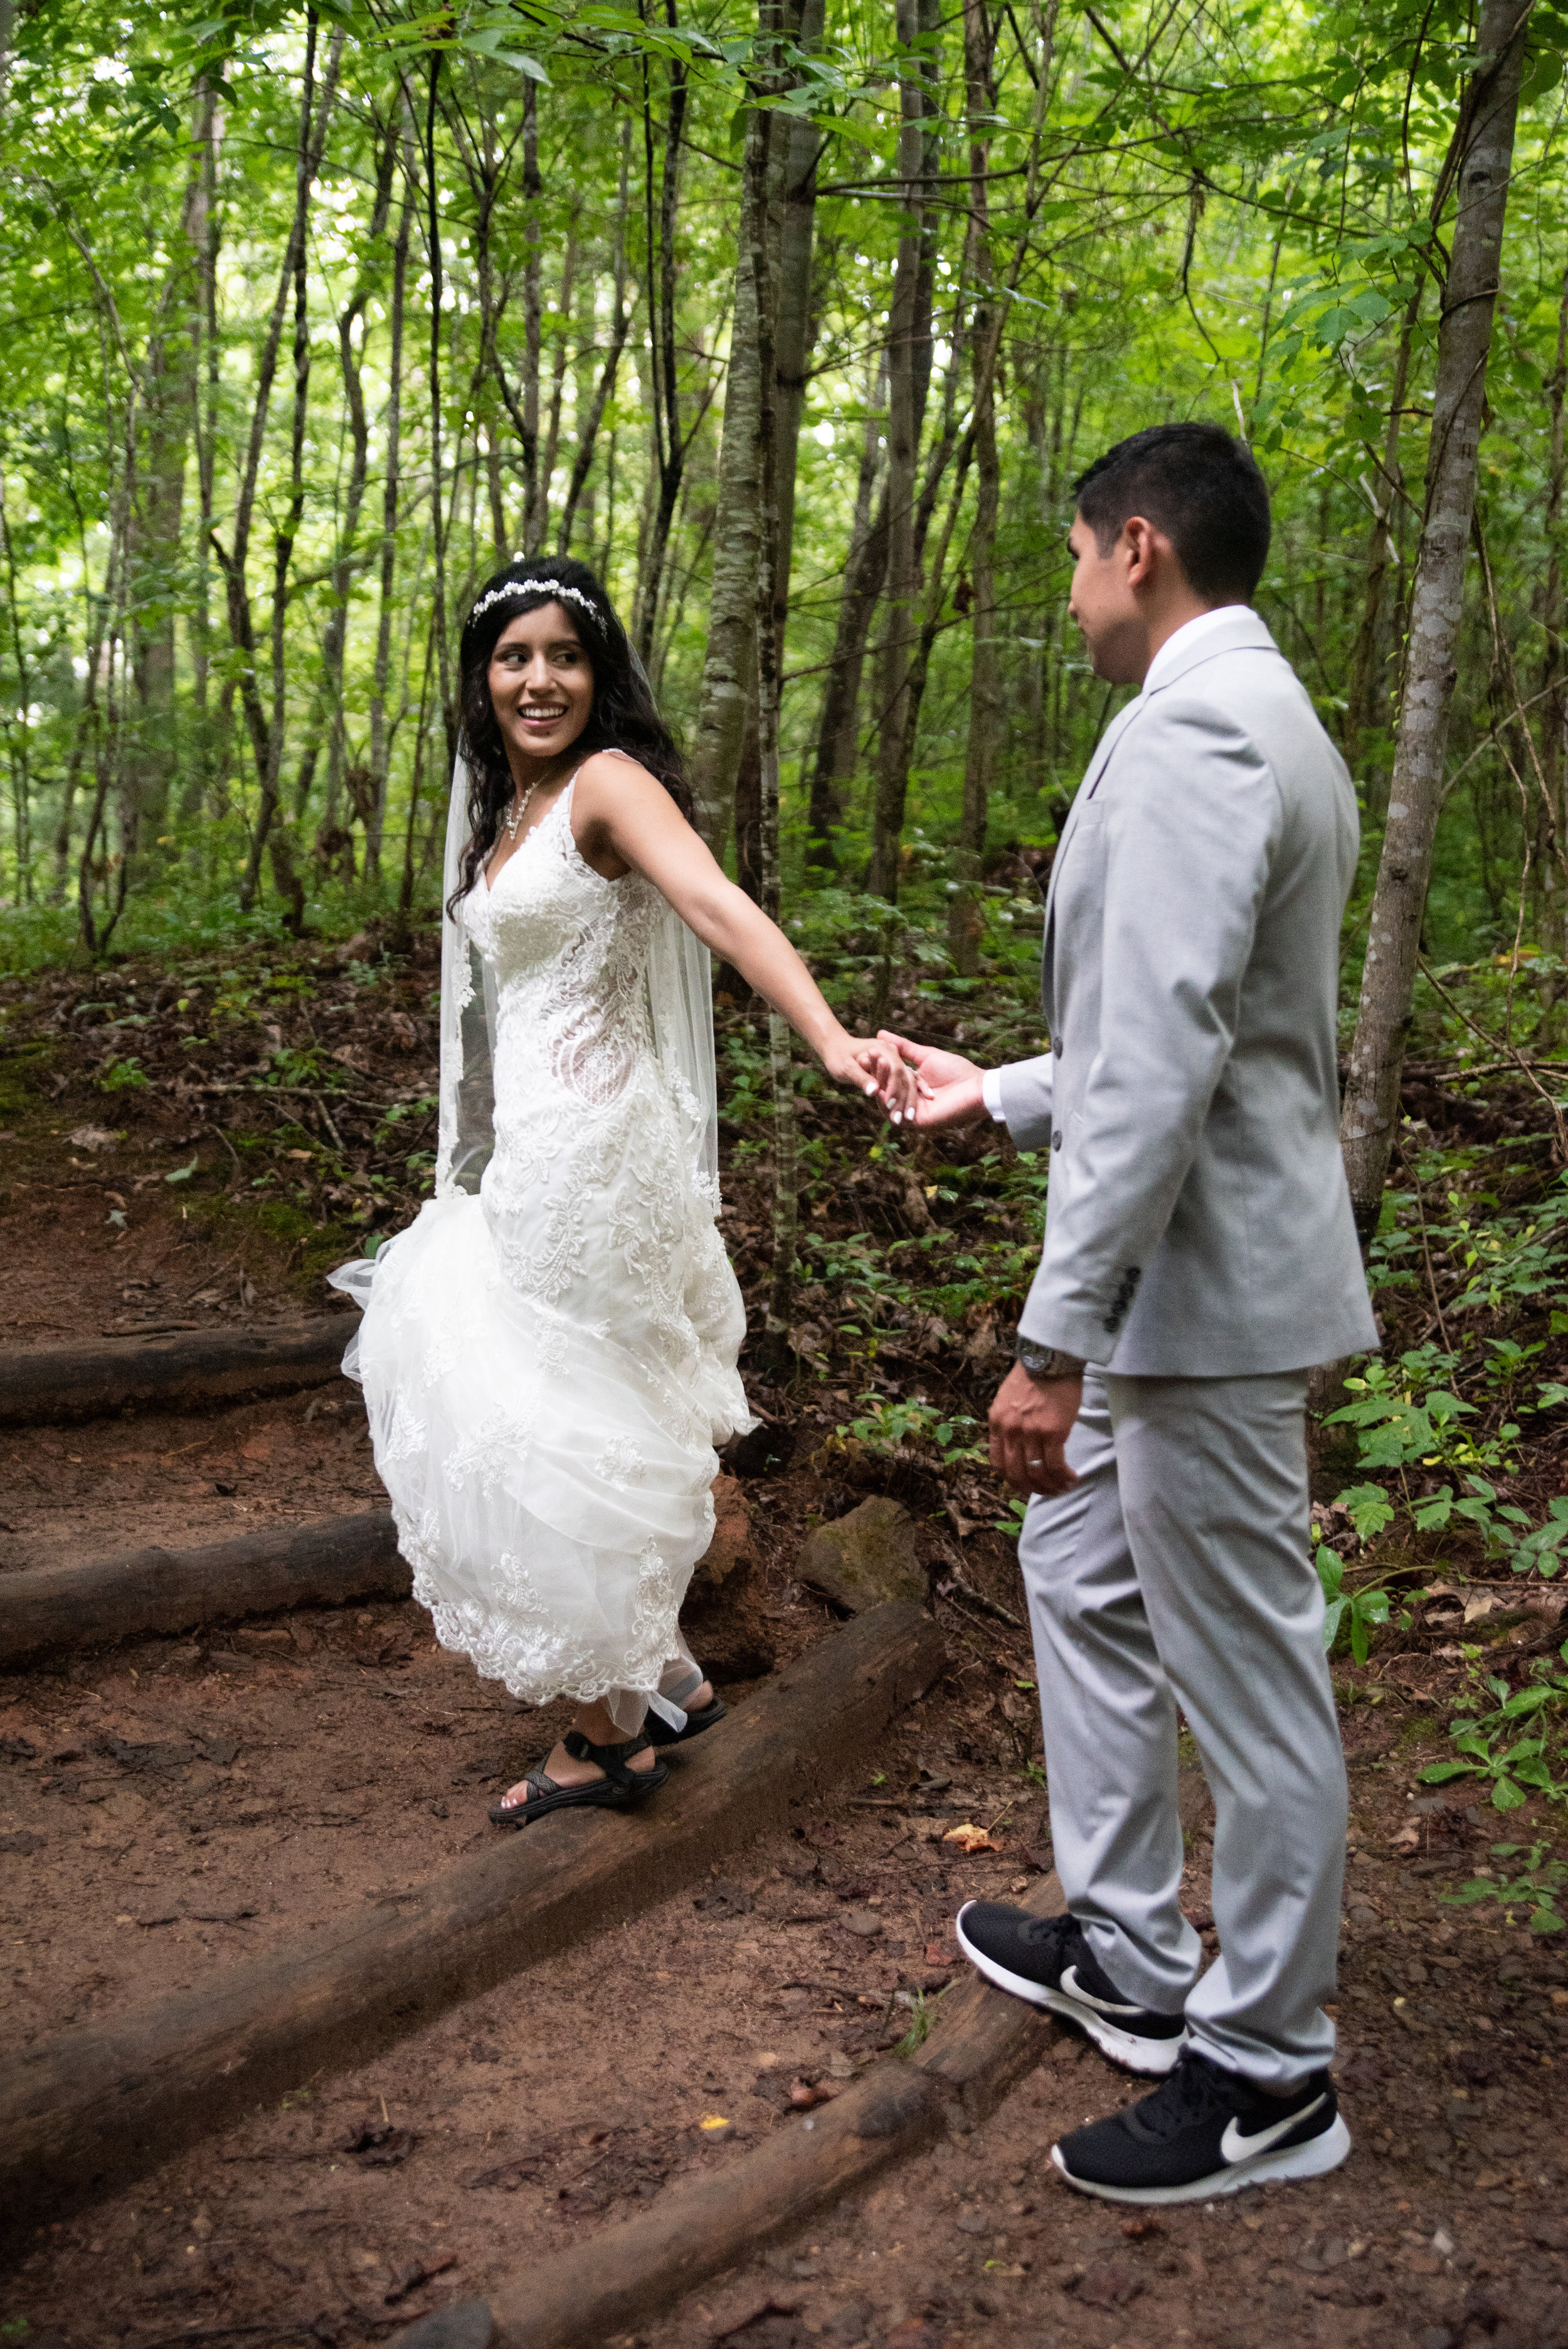 ArlynAlex_Wedding_Couples Portraits-98 arlyn and alex shoes on adventure shoot.jpg